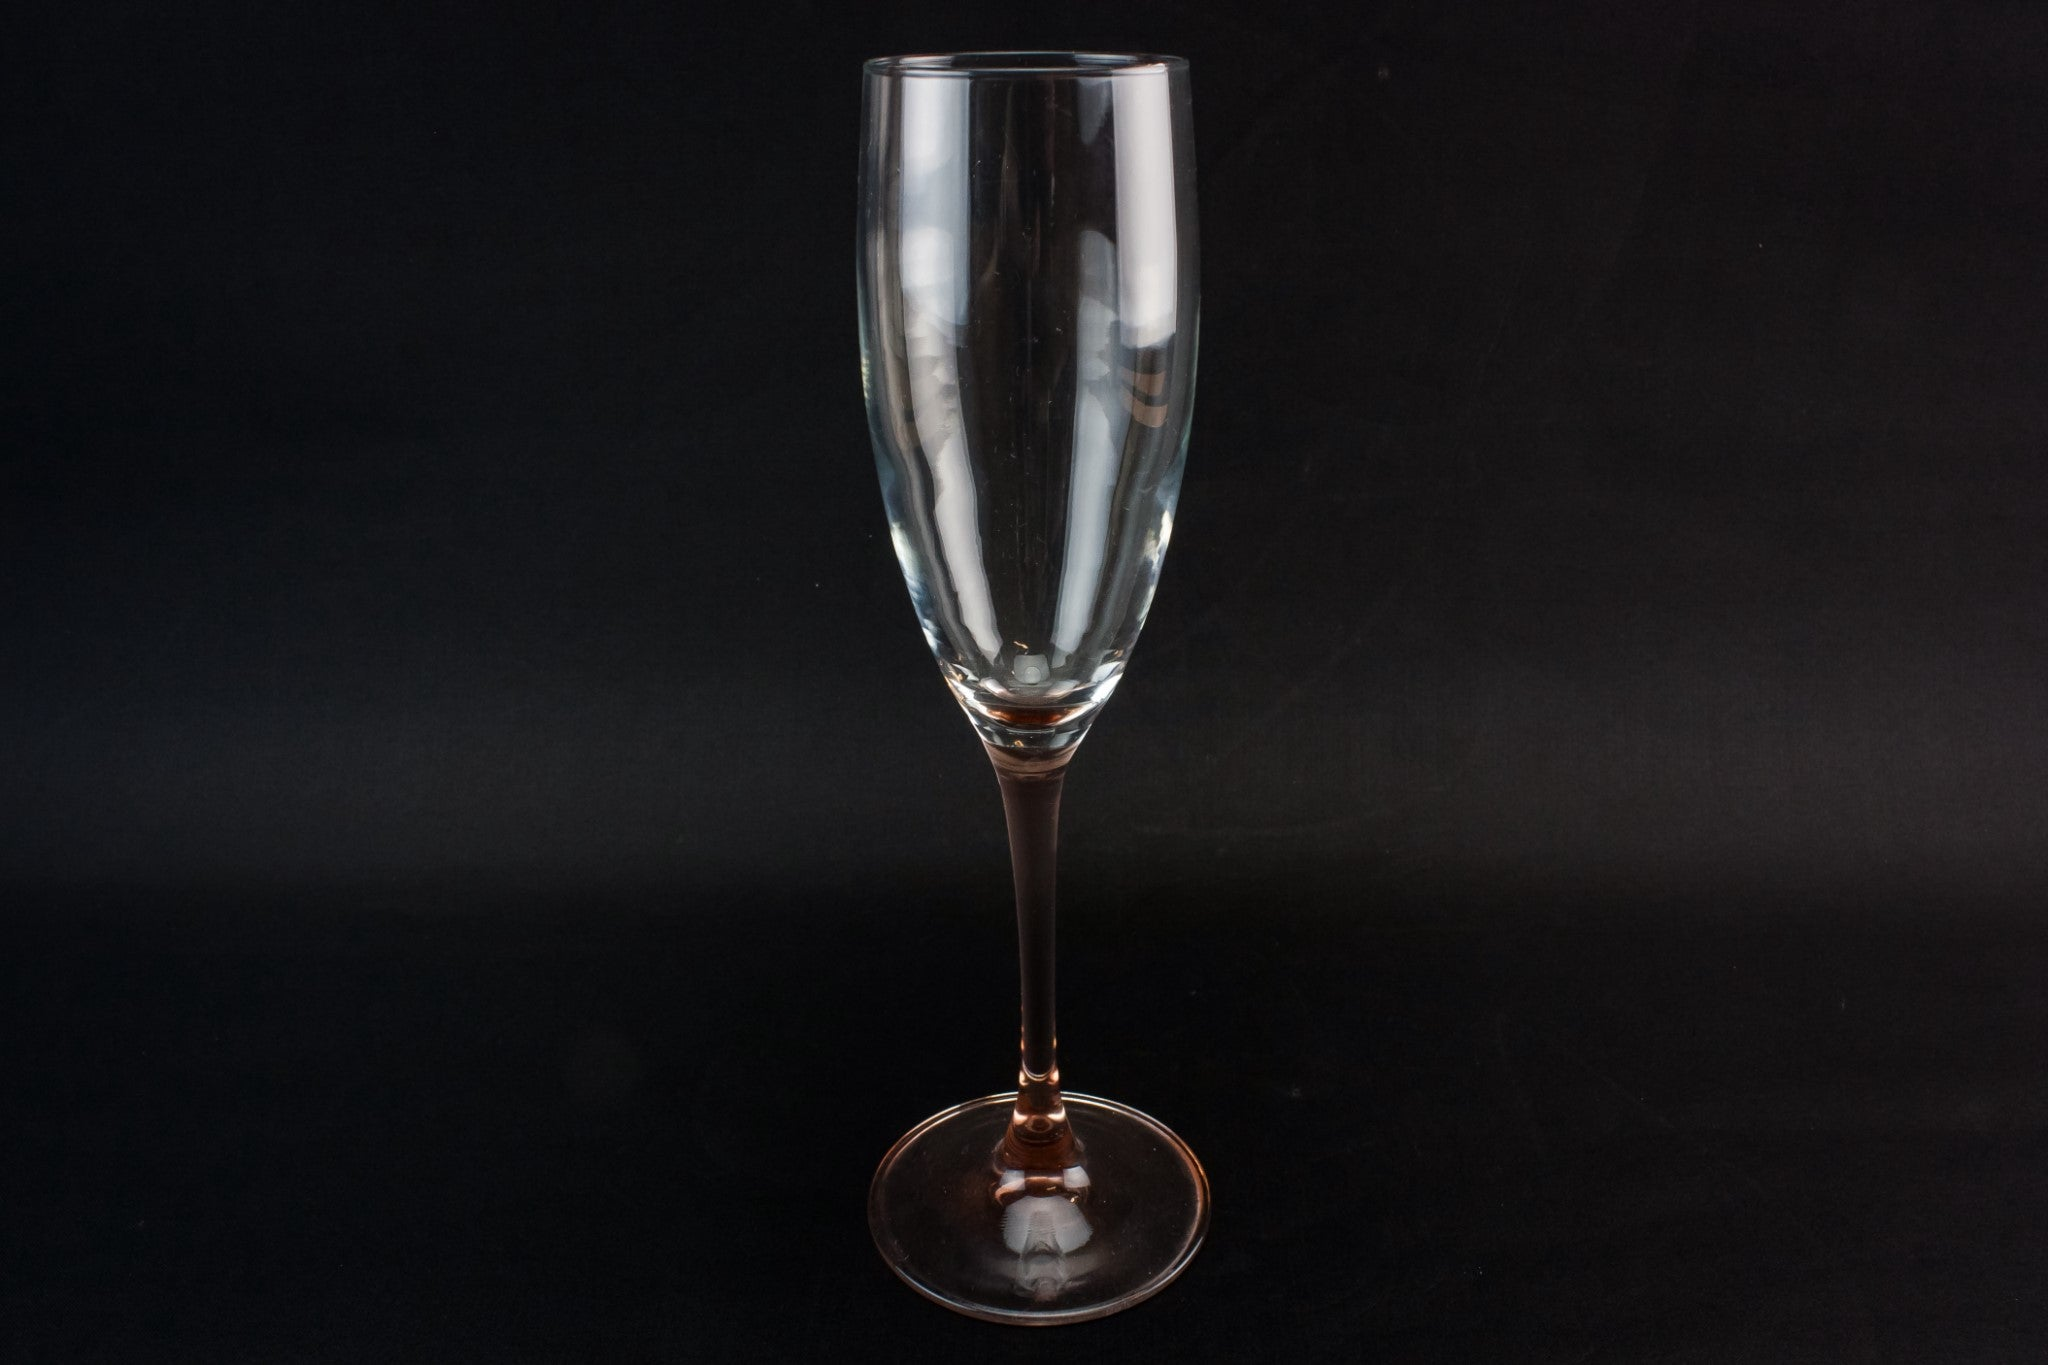 8 large champagne flutes